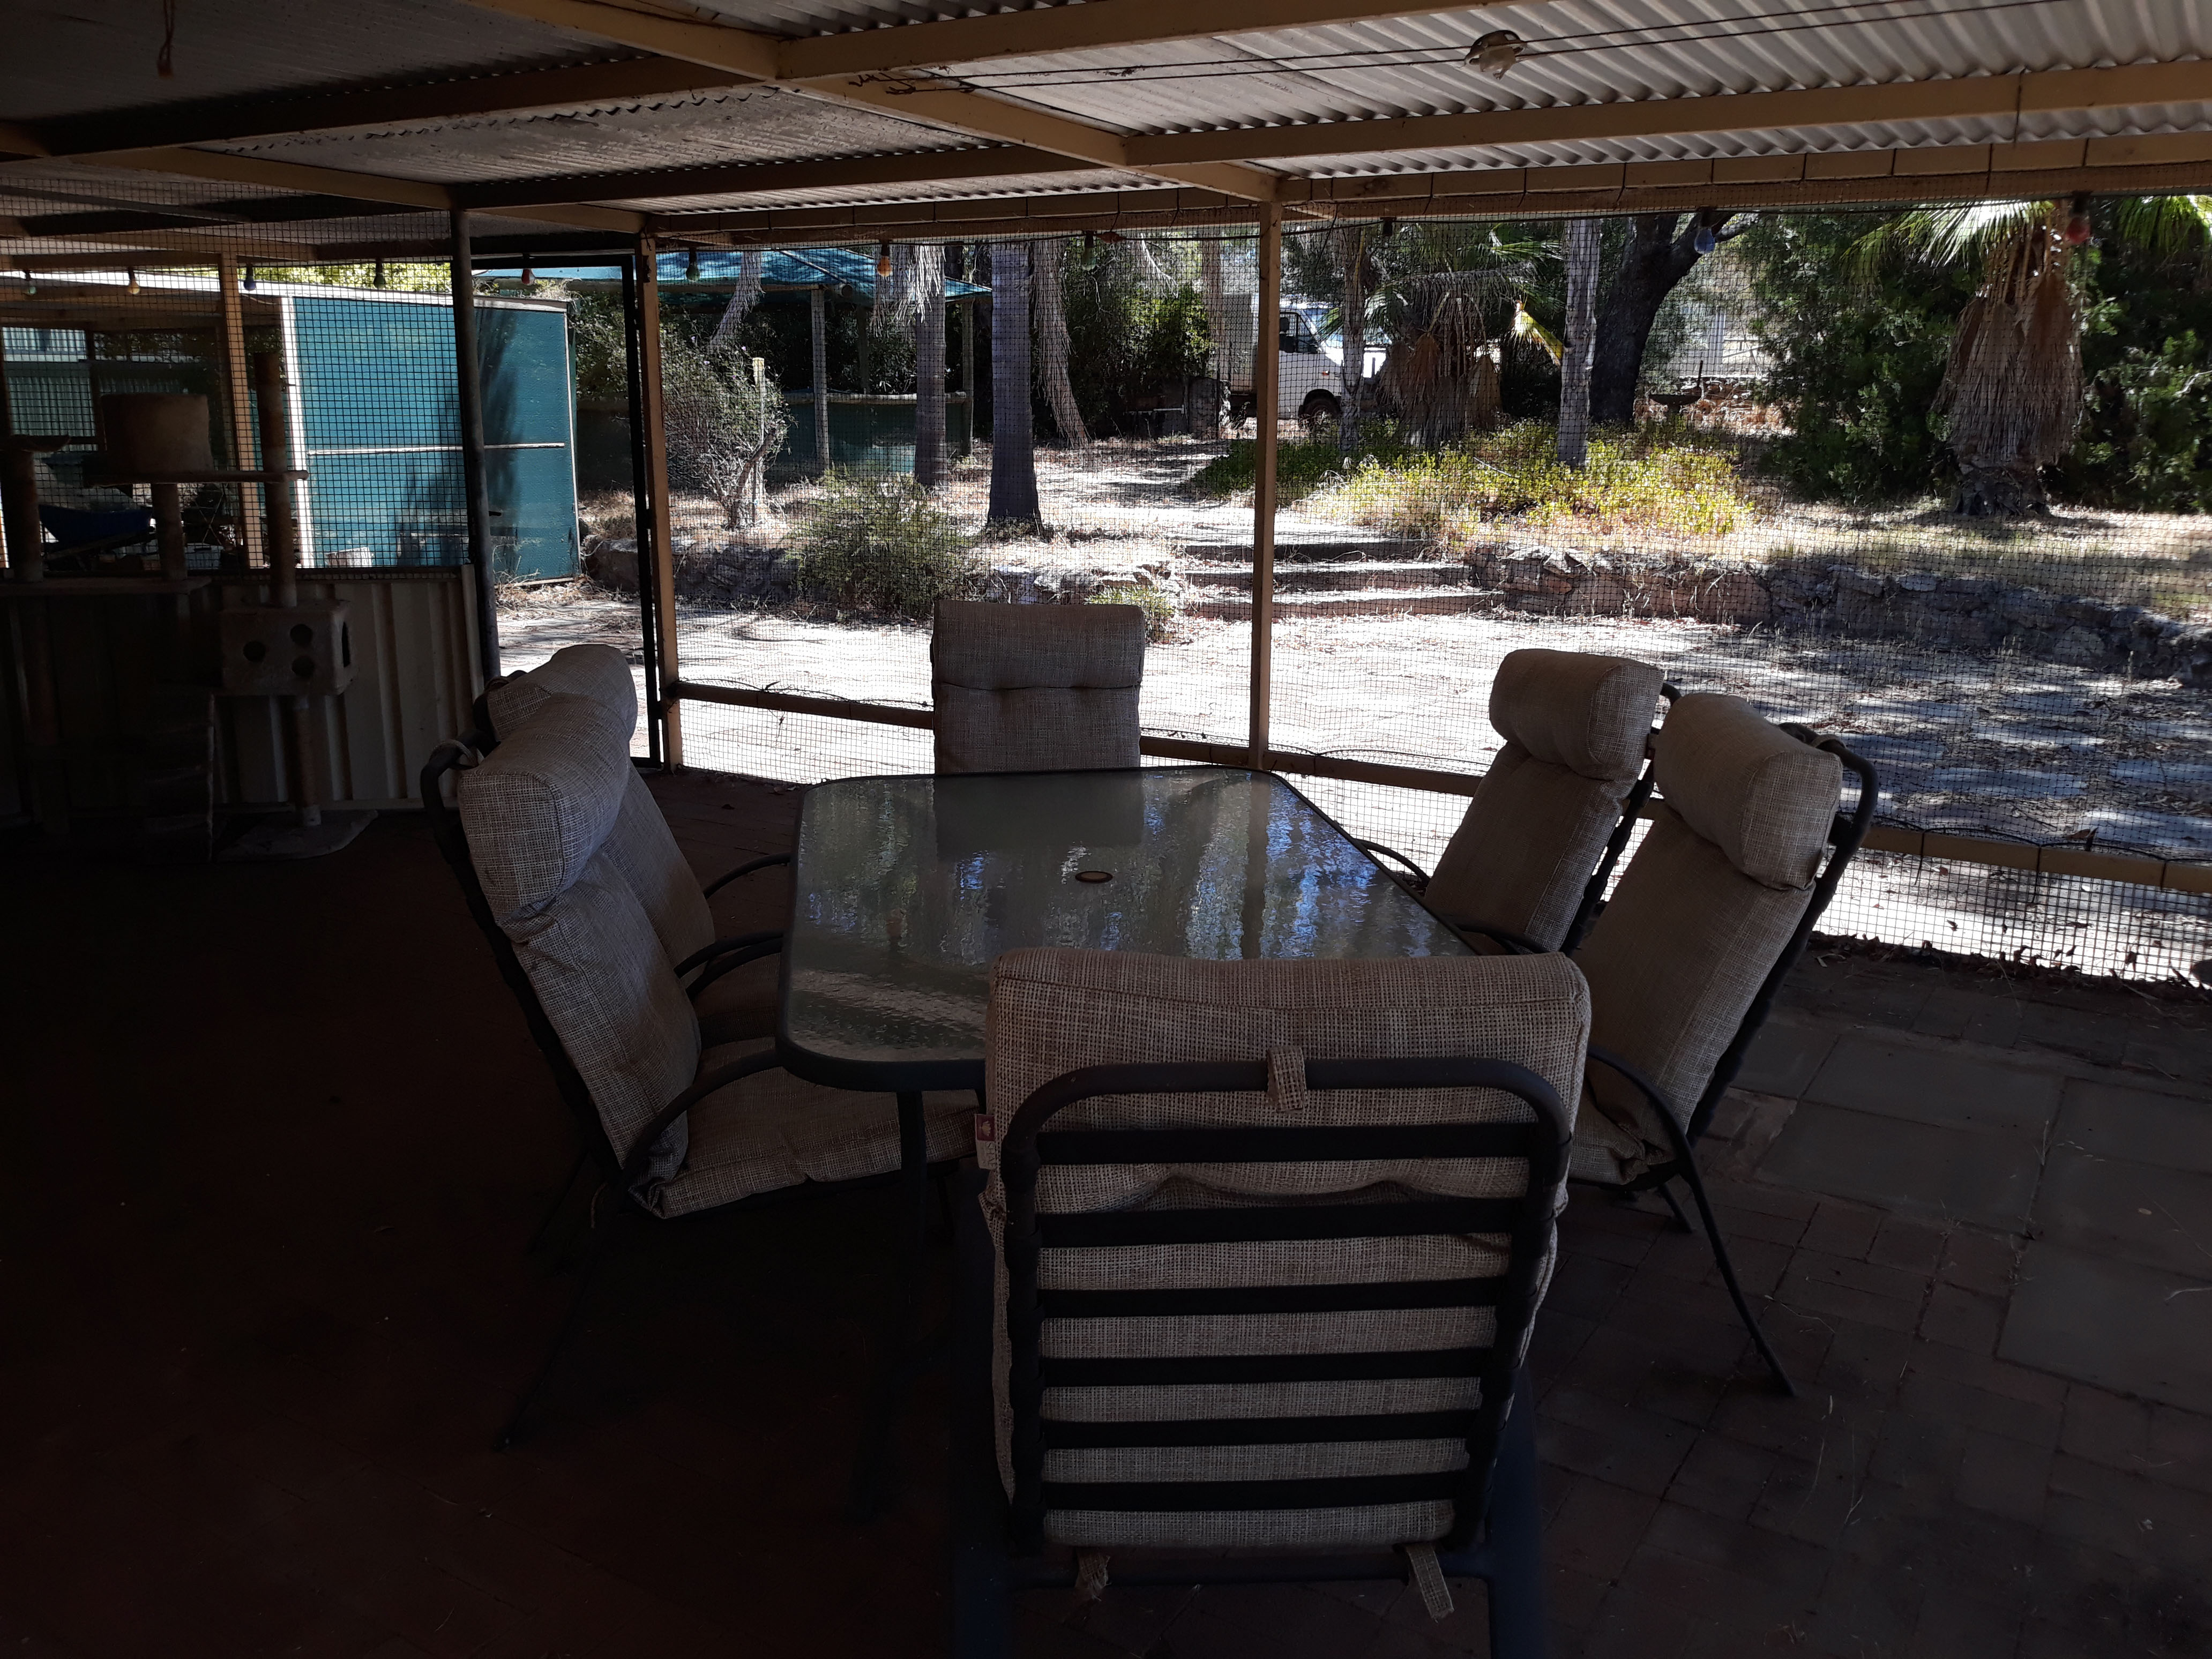 Porch, outdoor seating